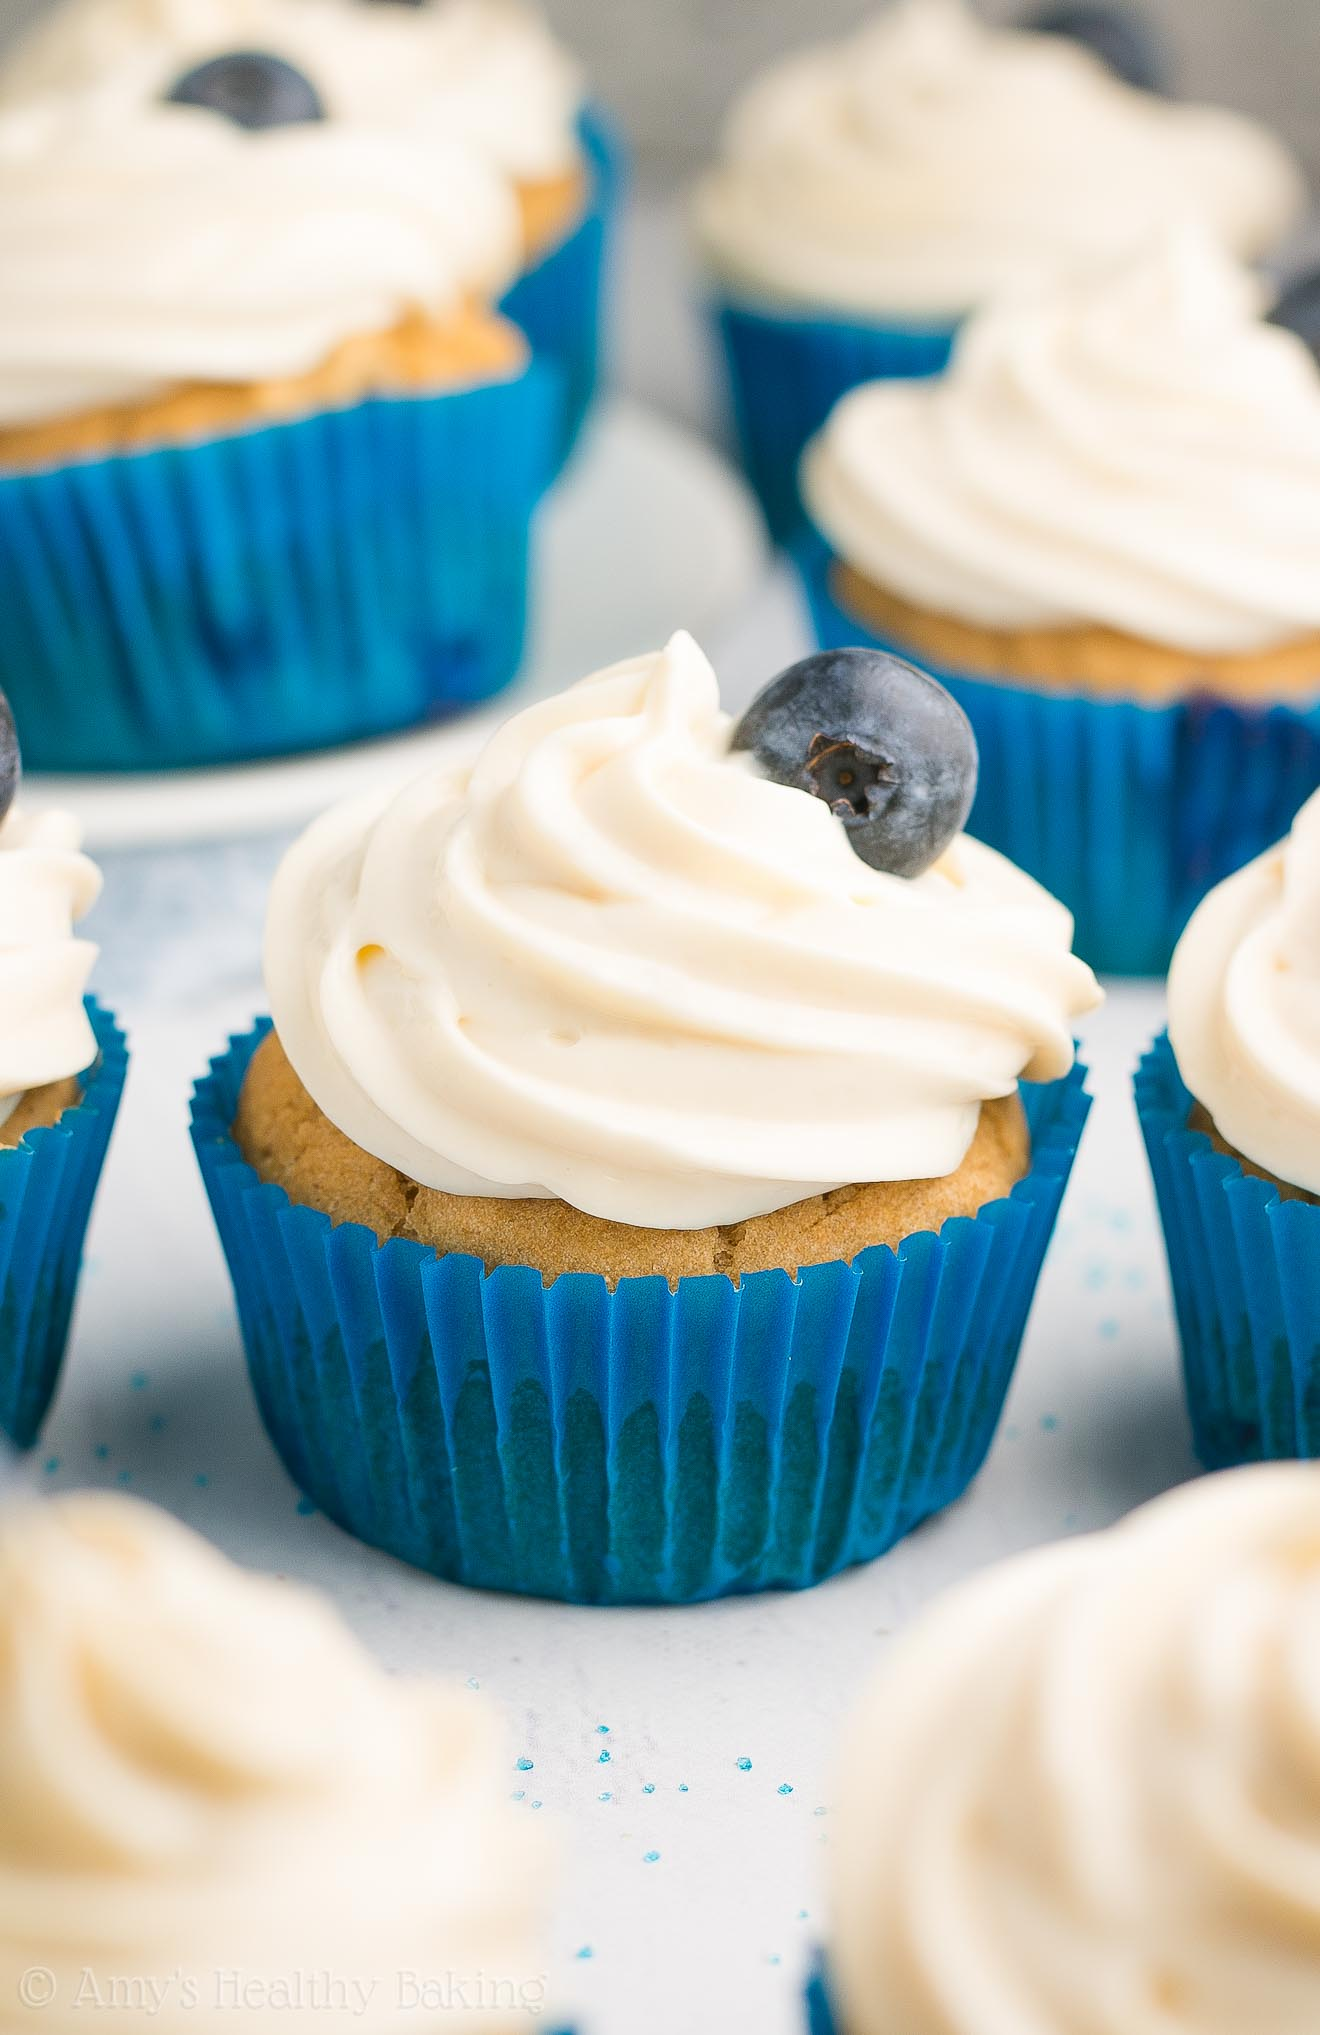 {HEALTHY!} Blueberry Cupcakes with Cream Cheese Frosting -- only 130 calories! They taste like they came from a fancy bakery, but this recipe is SO easy! Such a dream come true!